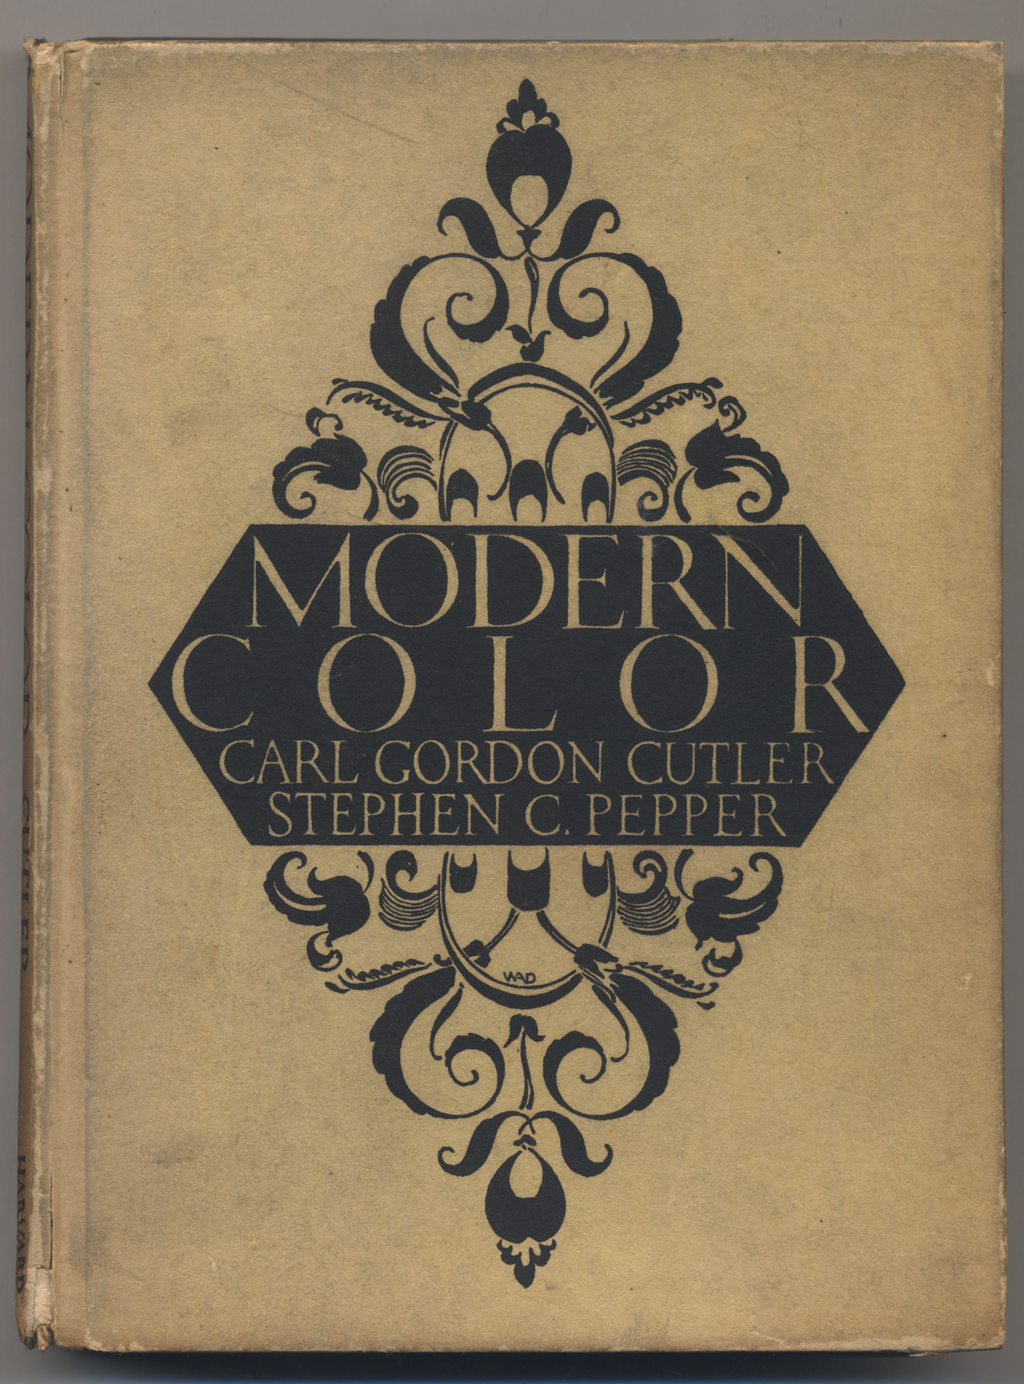 Binding of Modern Color by Carl Gordon Cutler and Stephen Pepper (Cambridge: Harvard University Press, 1923). Design by W.A. Dwiggins.